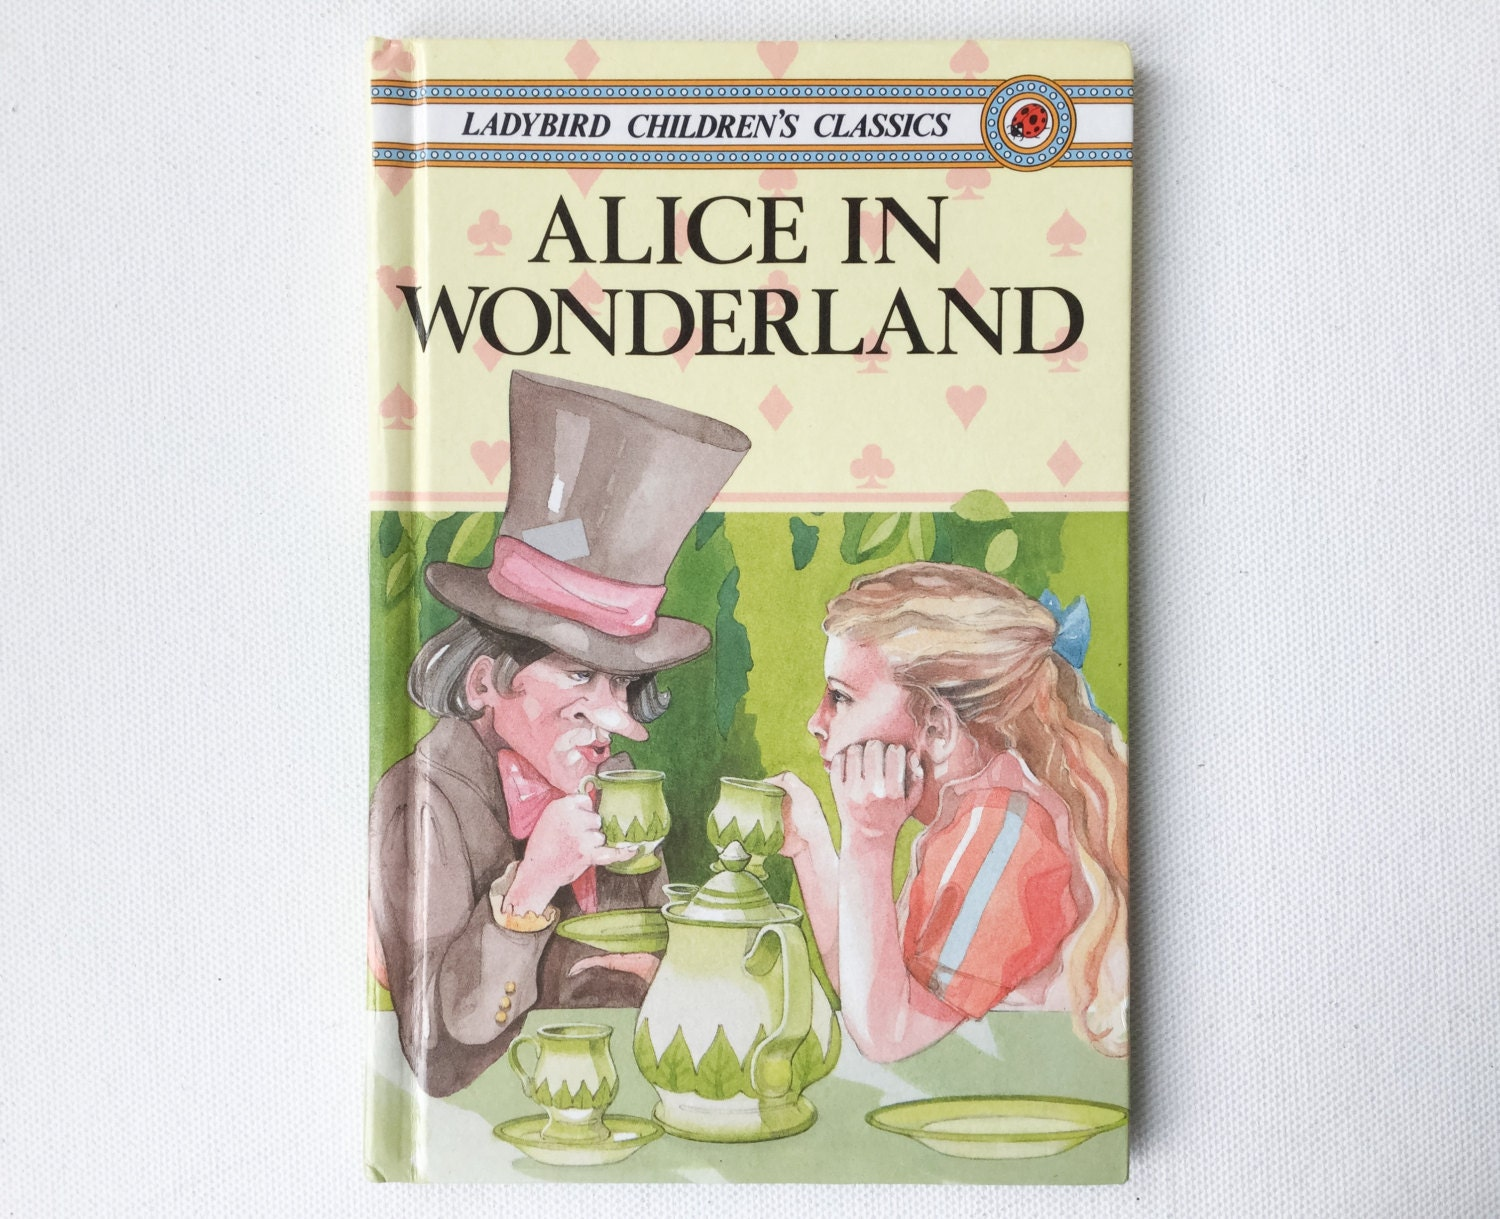 Vintage alice wonderland book